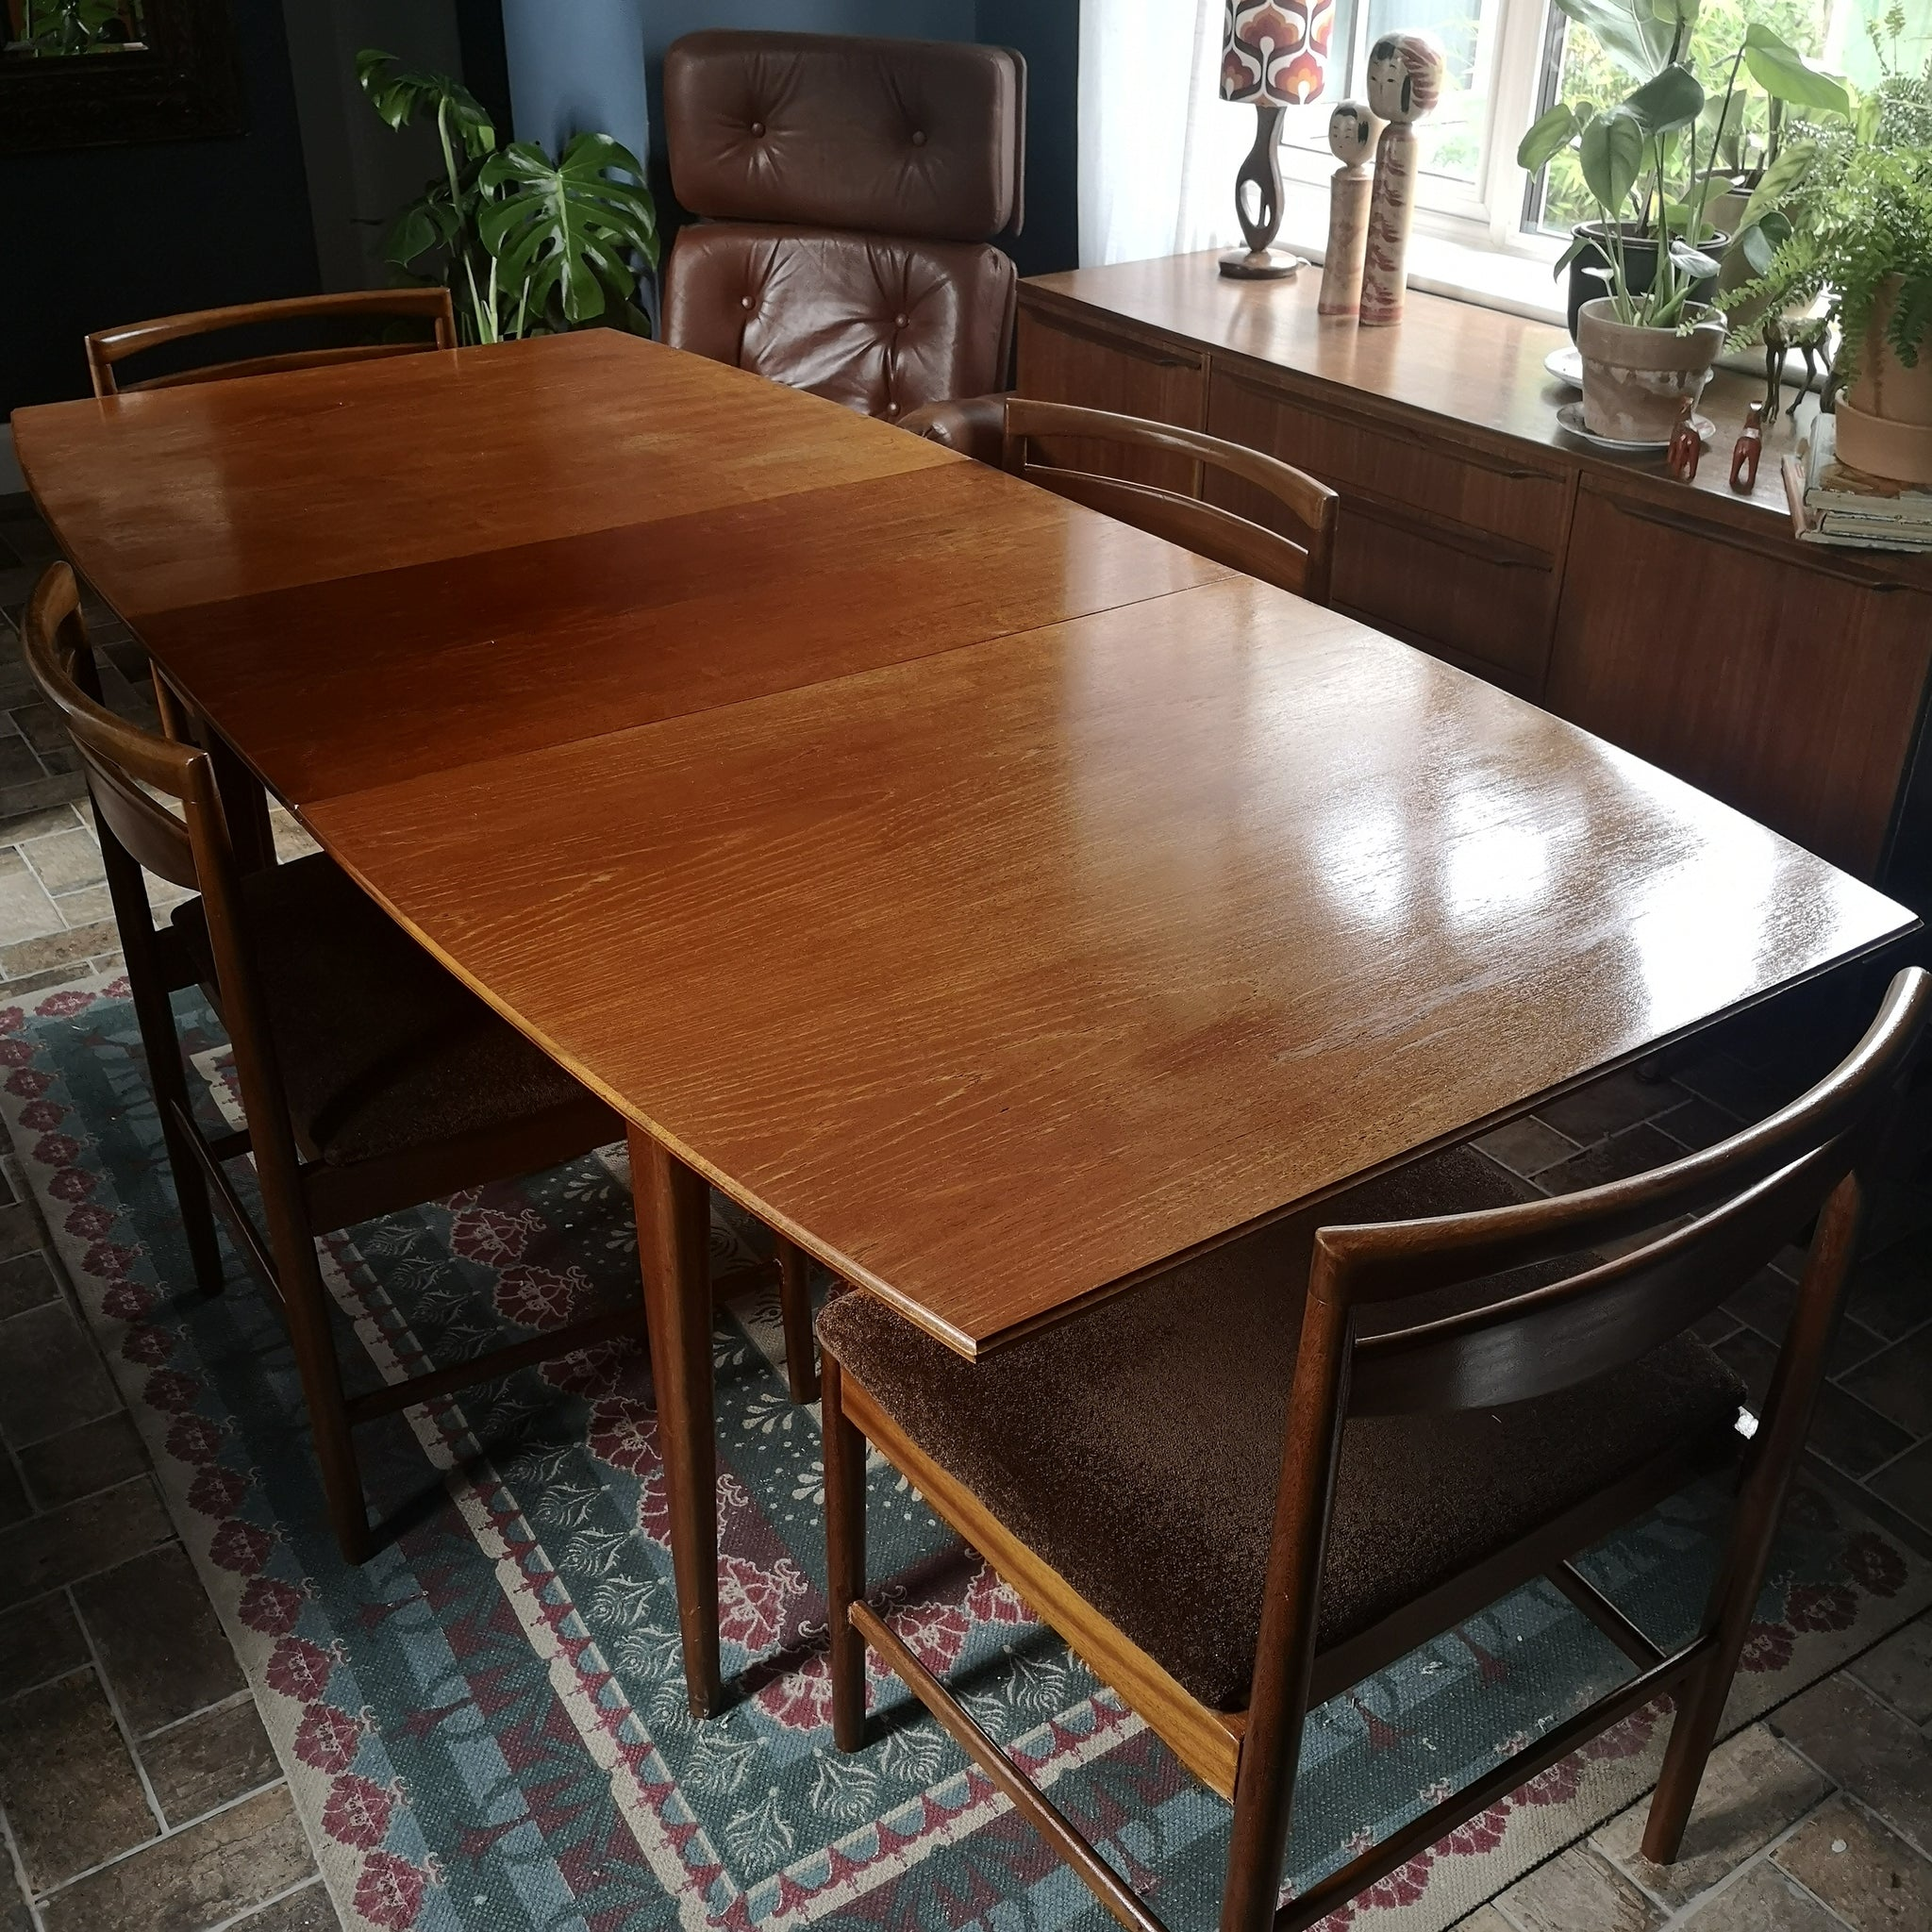 Mcintosh teak extended table & 4 chairs